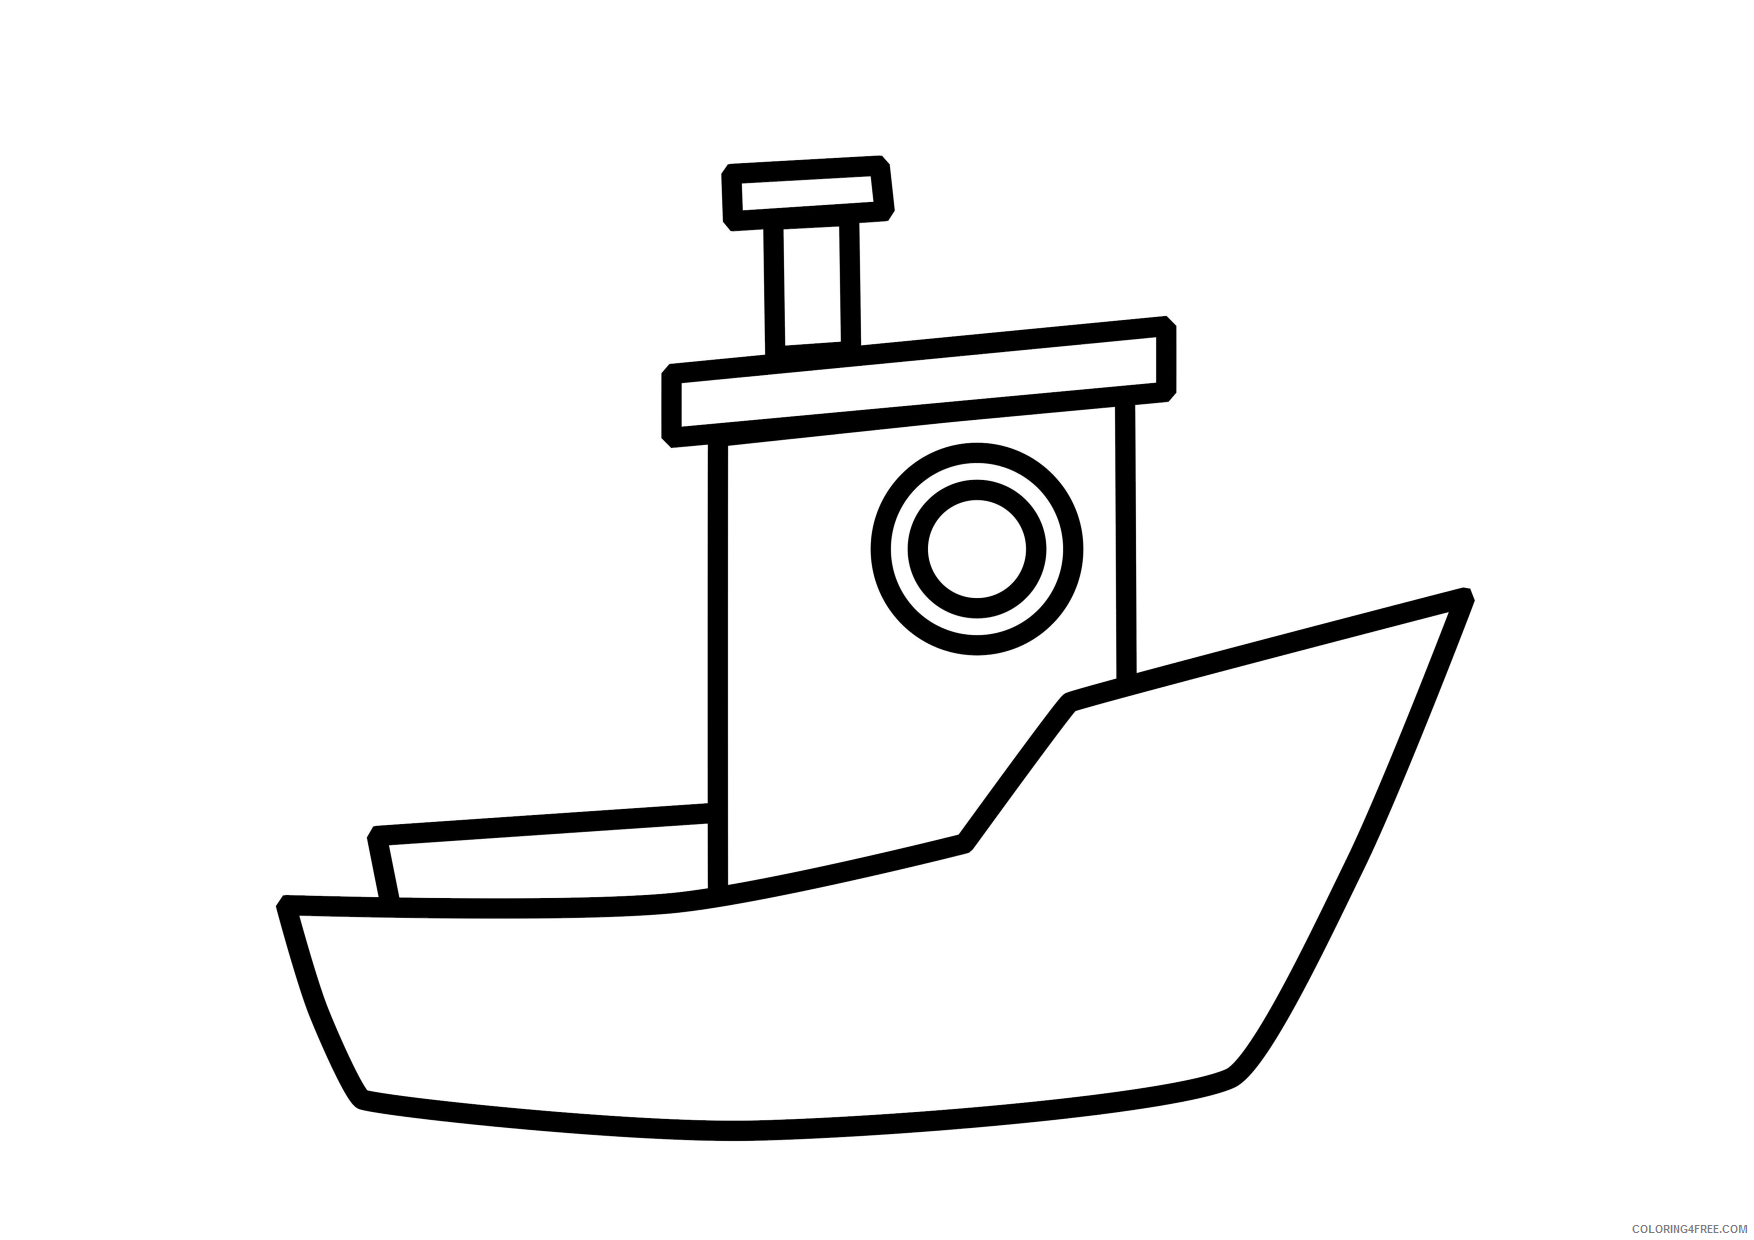 Sailboat Coloring Pictures - Coloring Home | 1240x1754